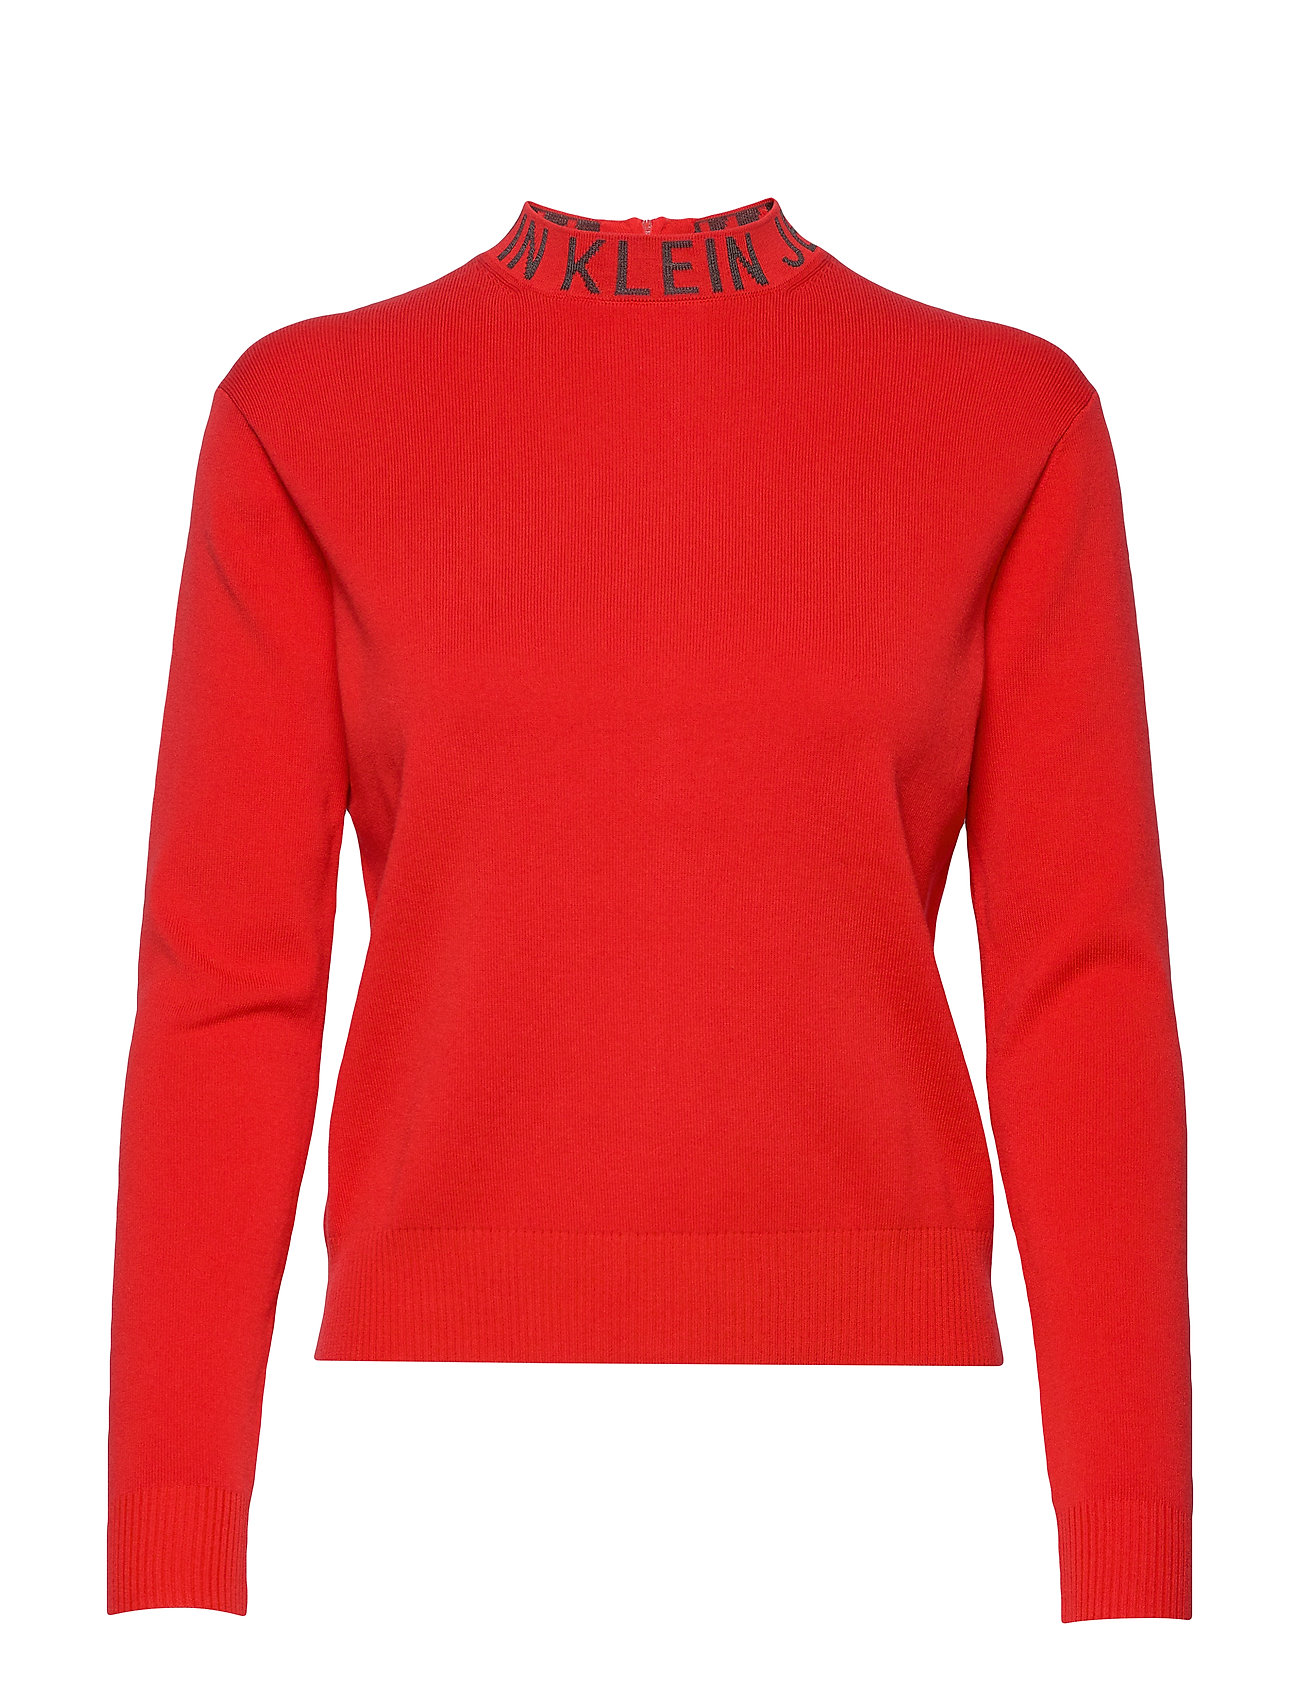 Calvin Klein Jeans NECK LOGO SWEATER - RACING RED